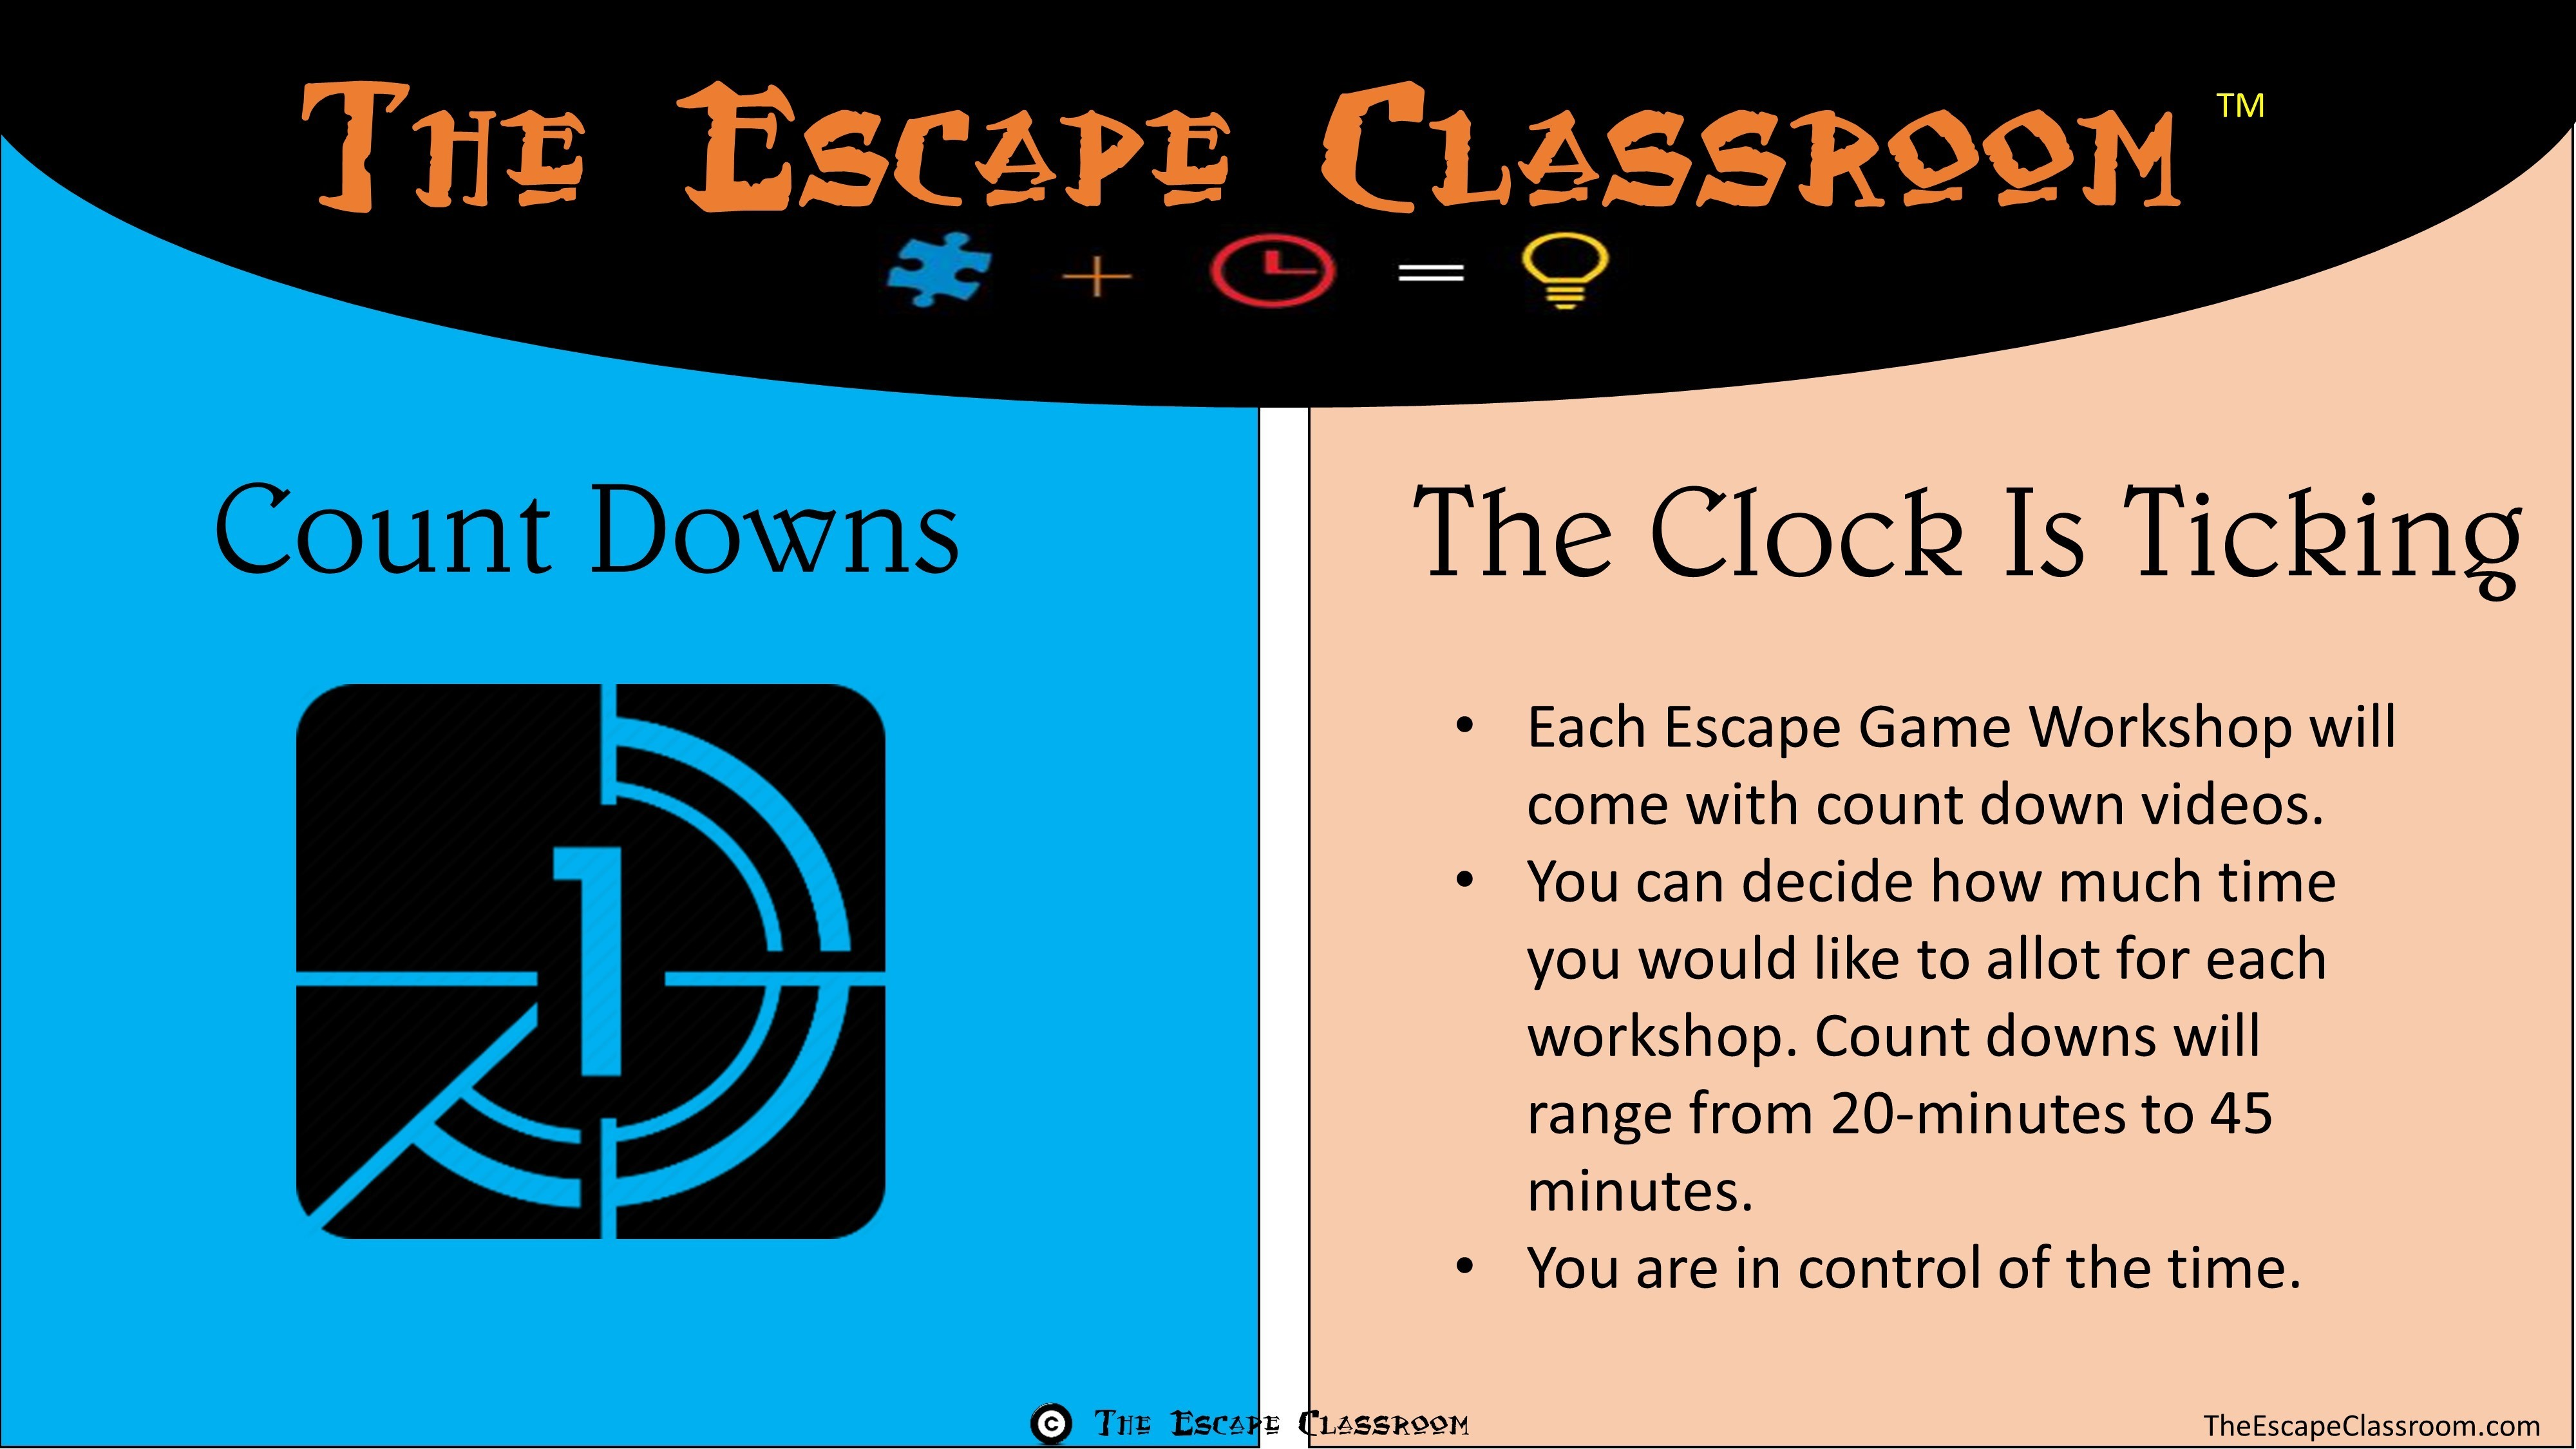 Chemistry periodic table escape 1 teacher license the escape the periodic table periods vs groups metals vs nonmetals vs metalloids naming element families and describe and explain periodic trends in gamestrikefo Choice Image